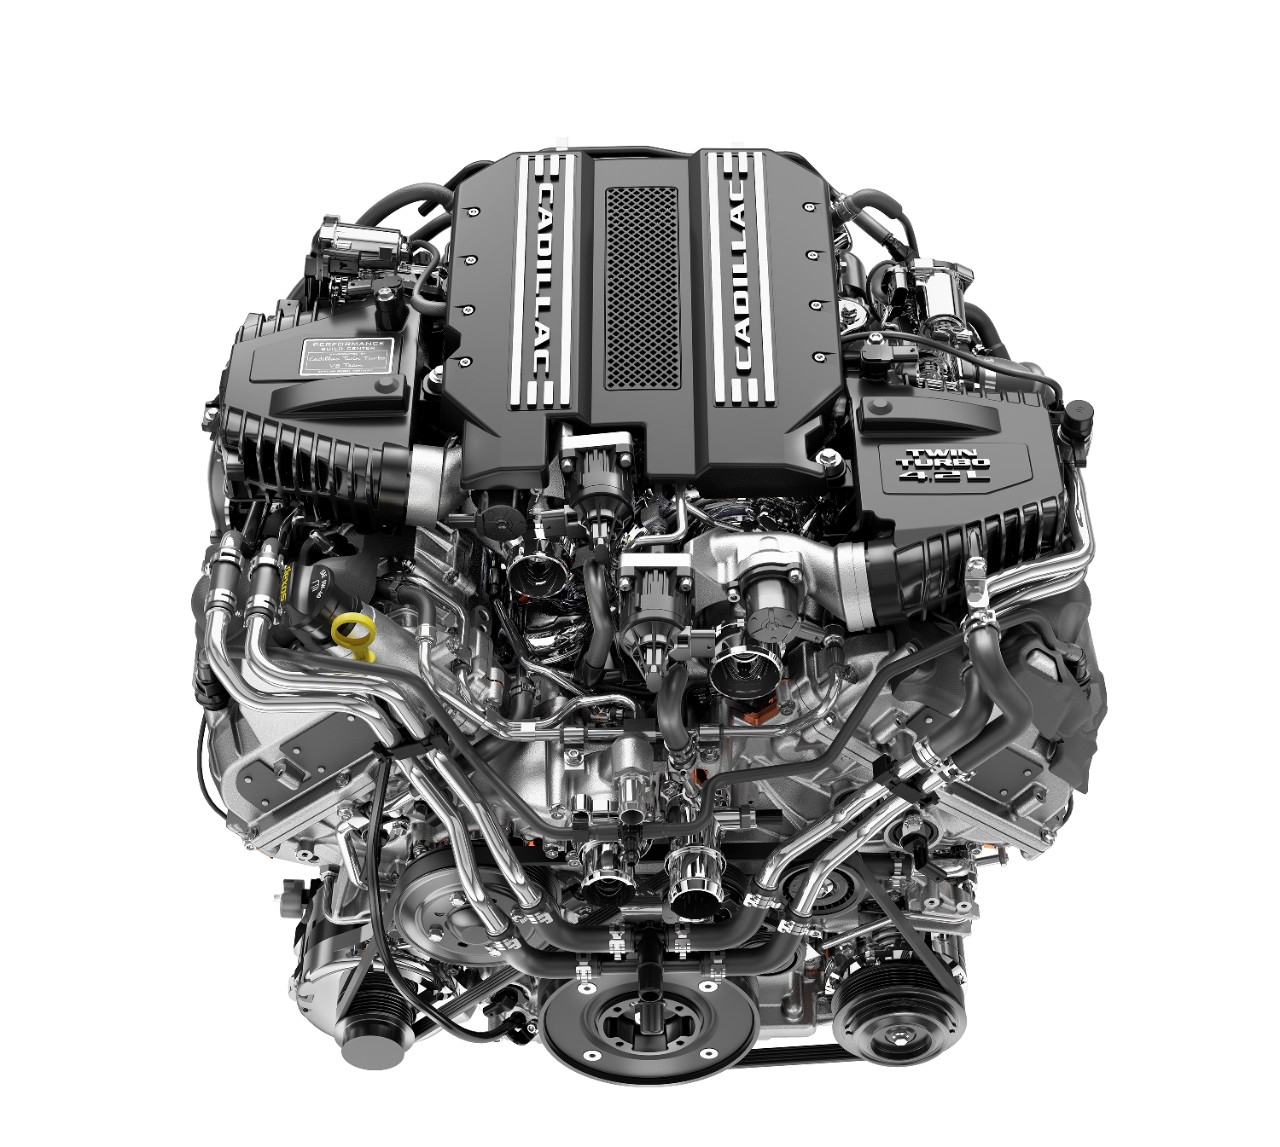 Cadillac's Blackwing V8 Engine To Live On For Manifattura